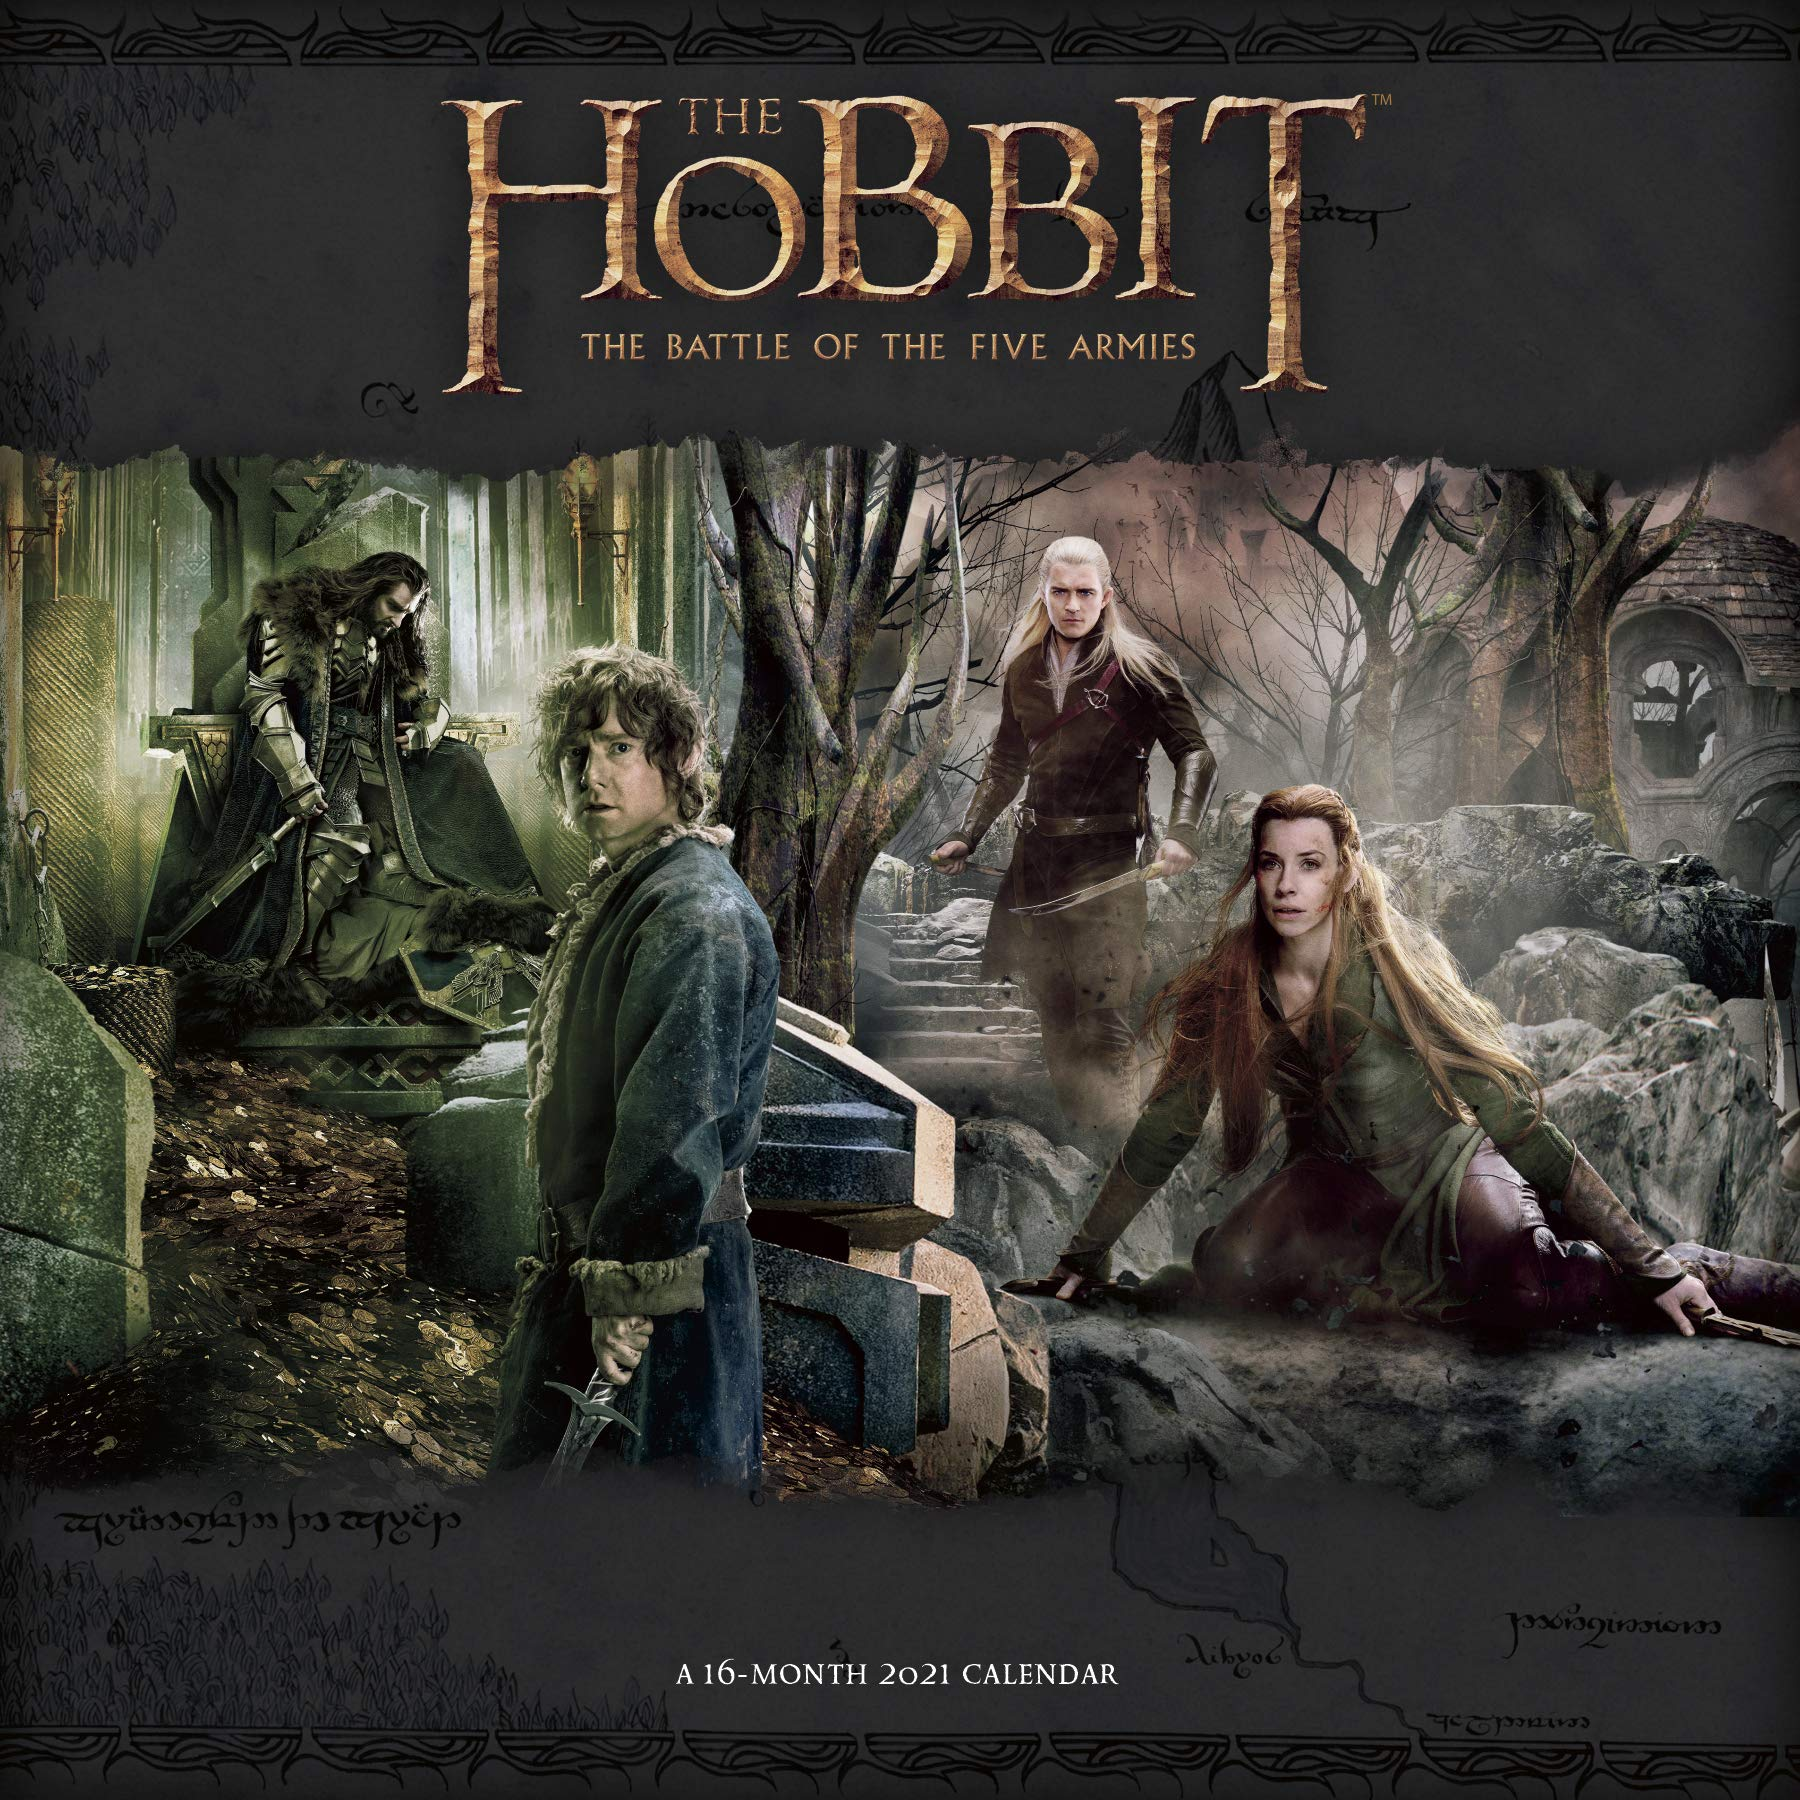 2021 The Hobbit Wall Calendar: Trends International: 0057668213303